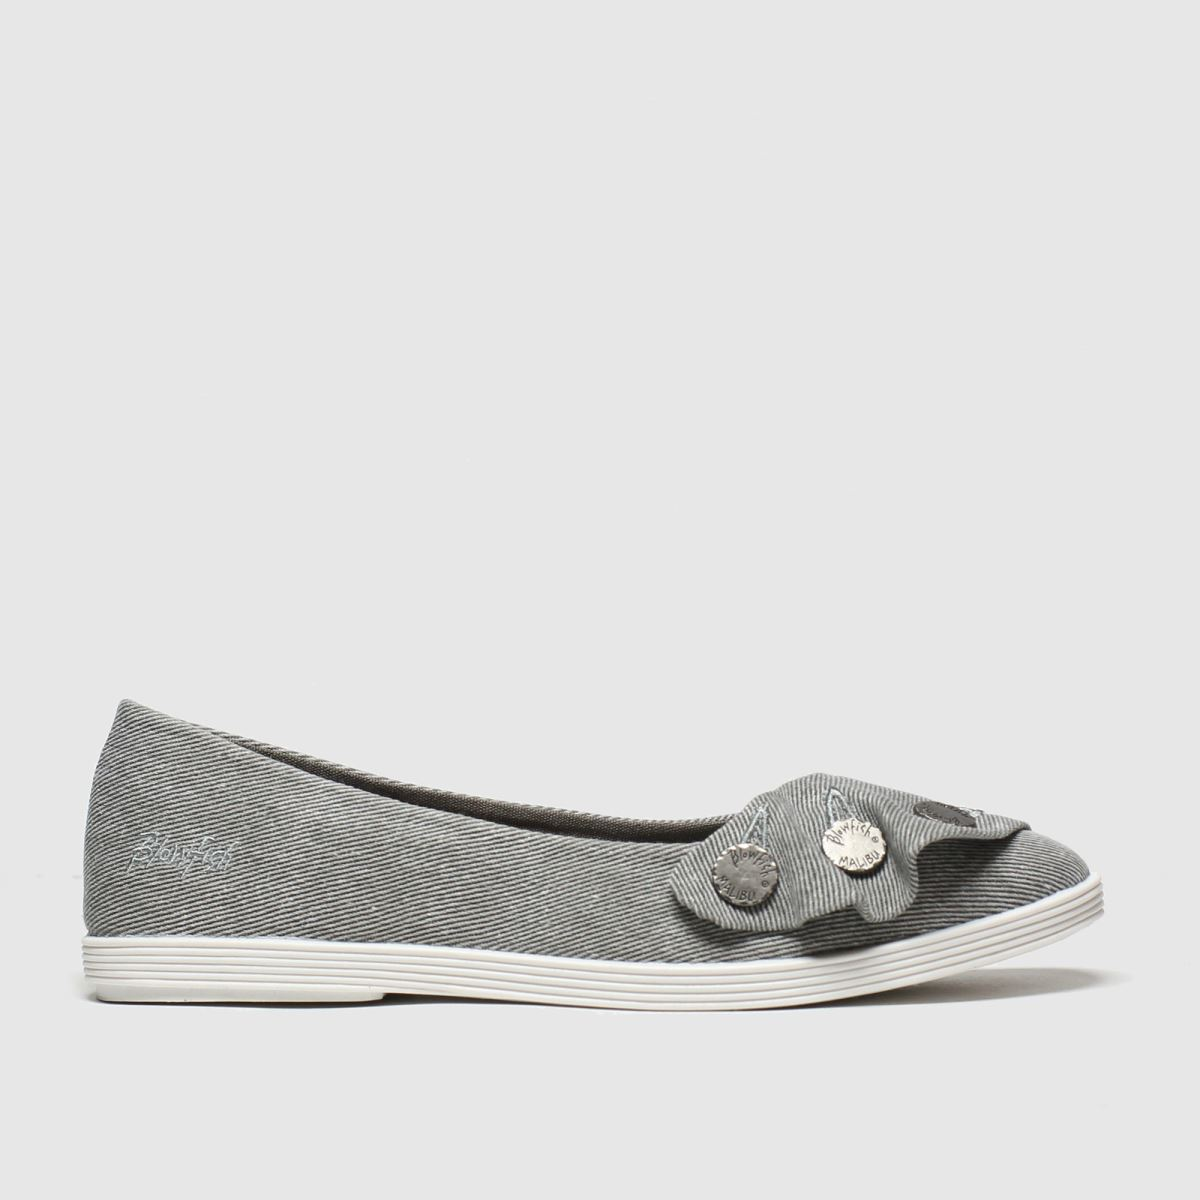 Blowfish Blowfish Grey Gogogo Flat Shoes